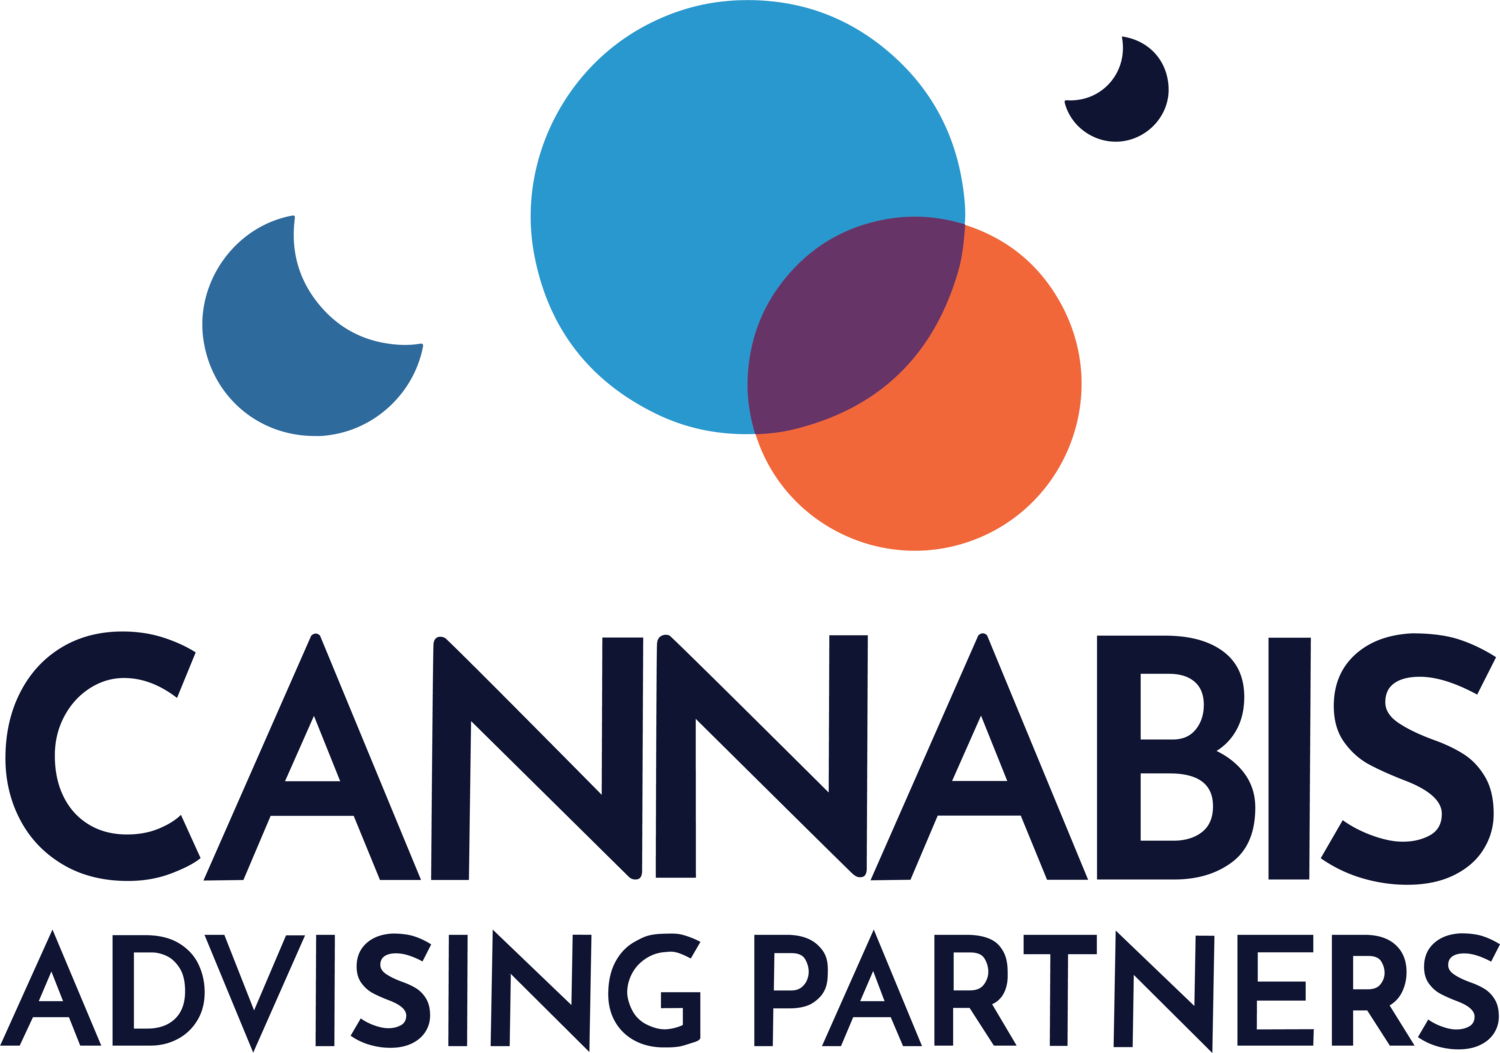 California Cannabis Consulting - Cannabis Advising Partners